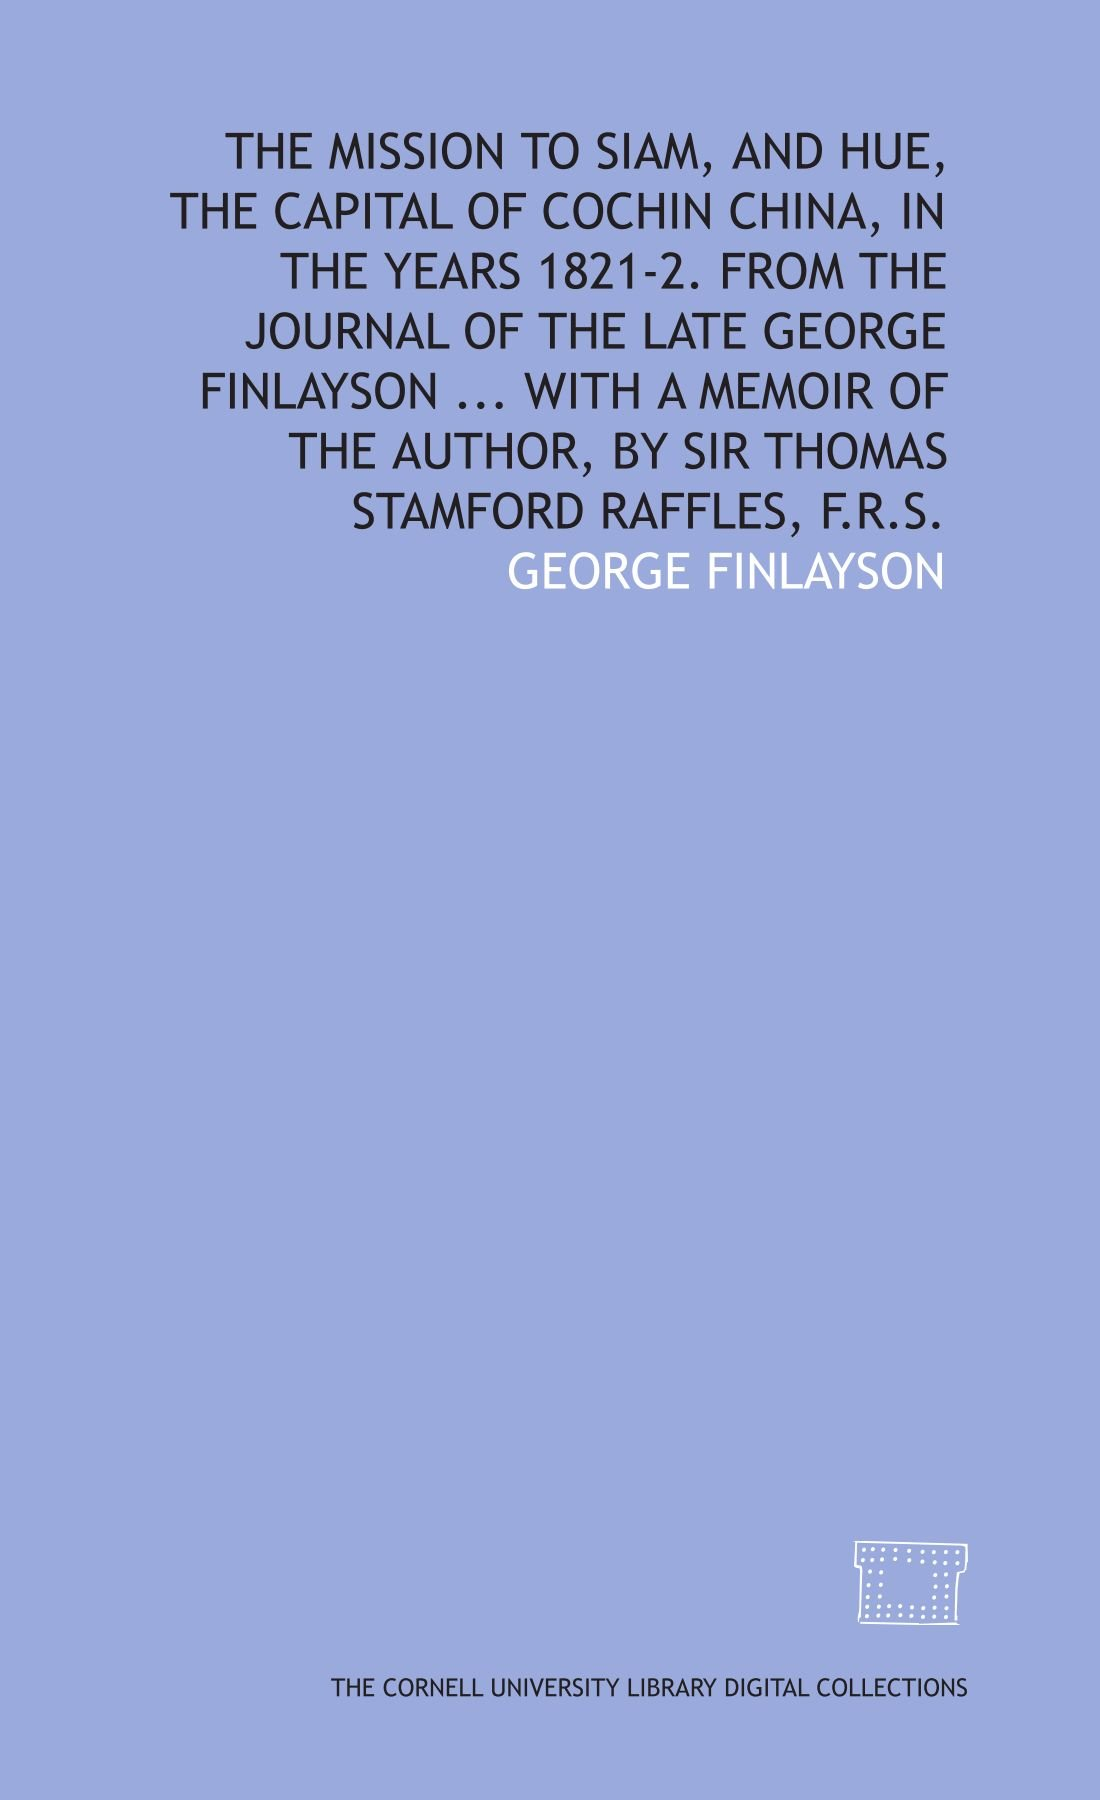 Read Online The mission to Siam, and Hue, the capital of Cochin China, in the years 1821-2. From the journal of the late George Finlayson . . . With a memoir of the author, by Sir Thomas Stamford Raffles, F.R.S. ebook